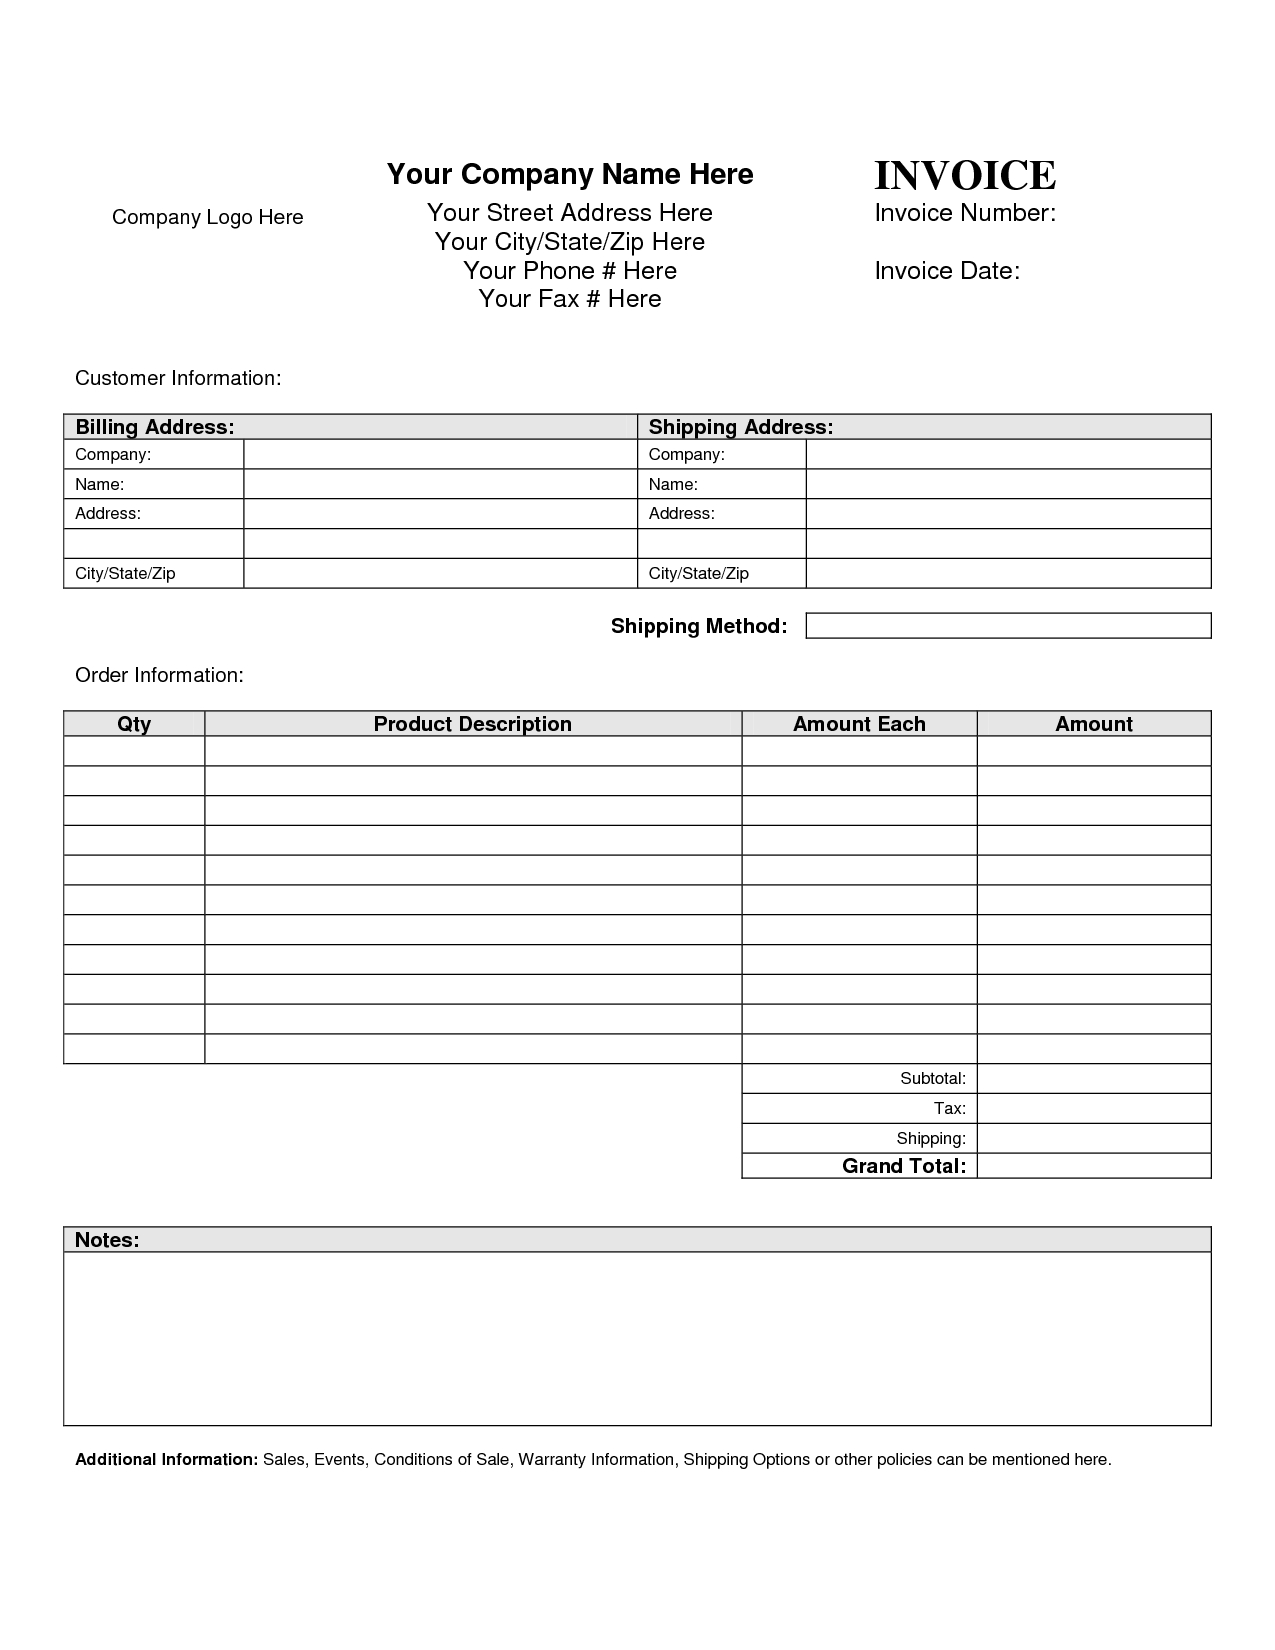 blank invoice template blank invoice sample invoice templates